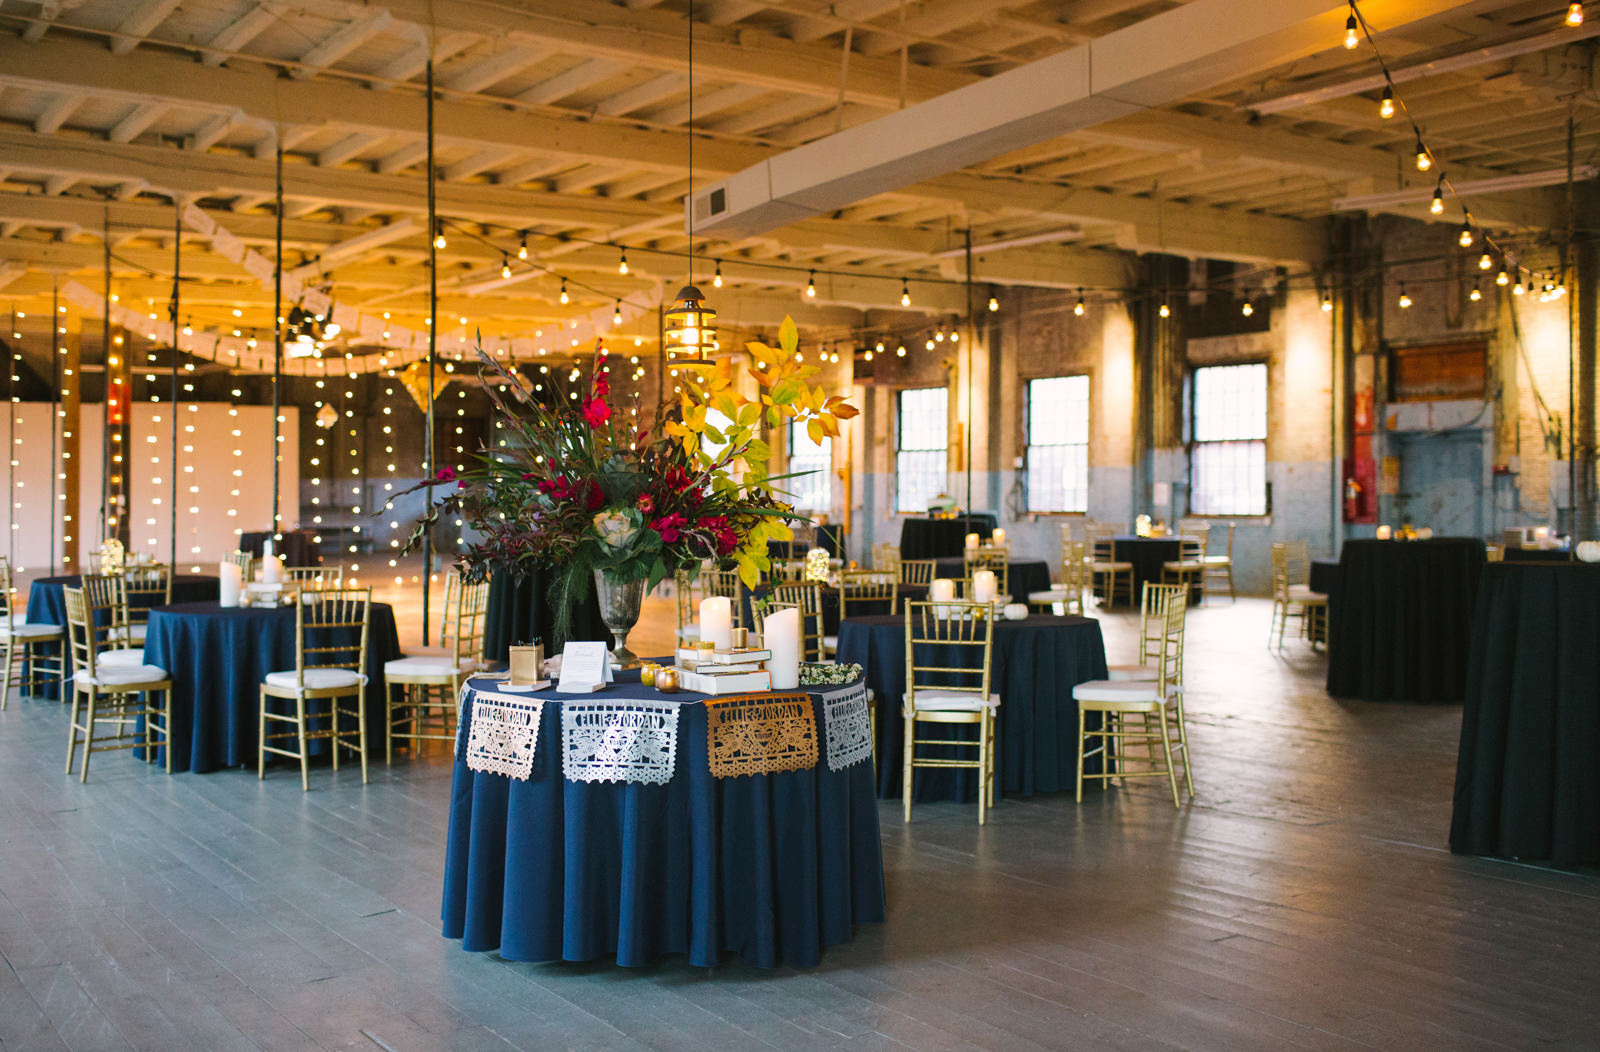 the portland company space designed by sarah goodwin in maine